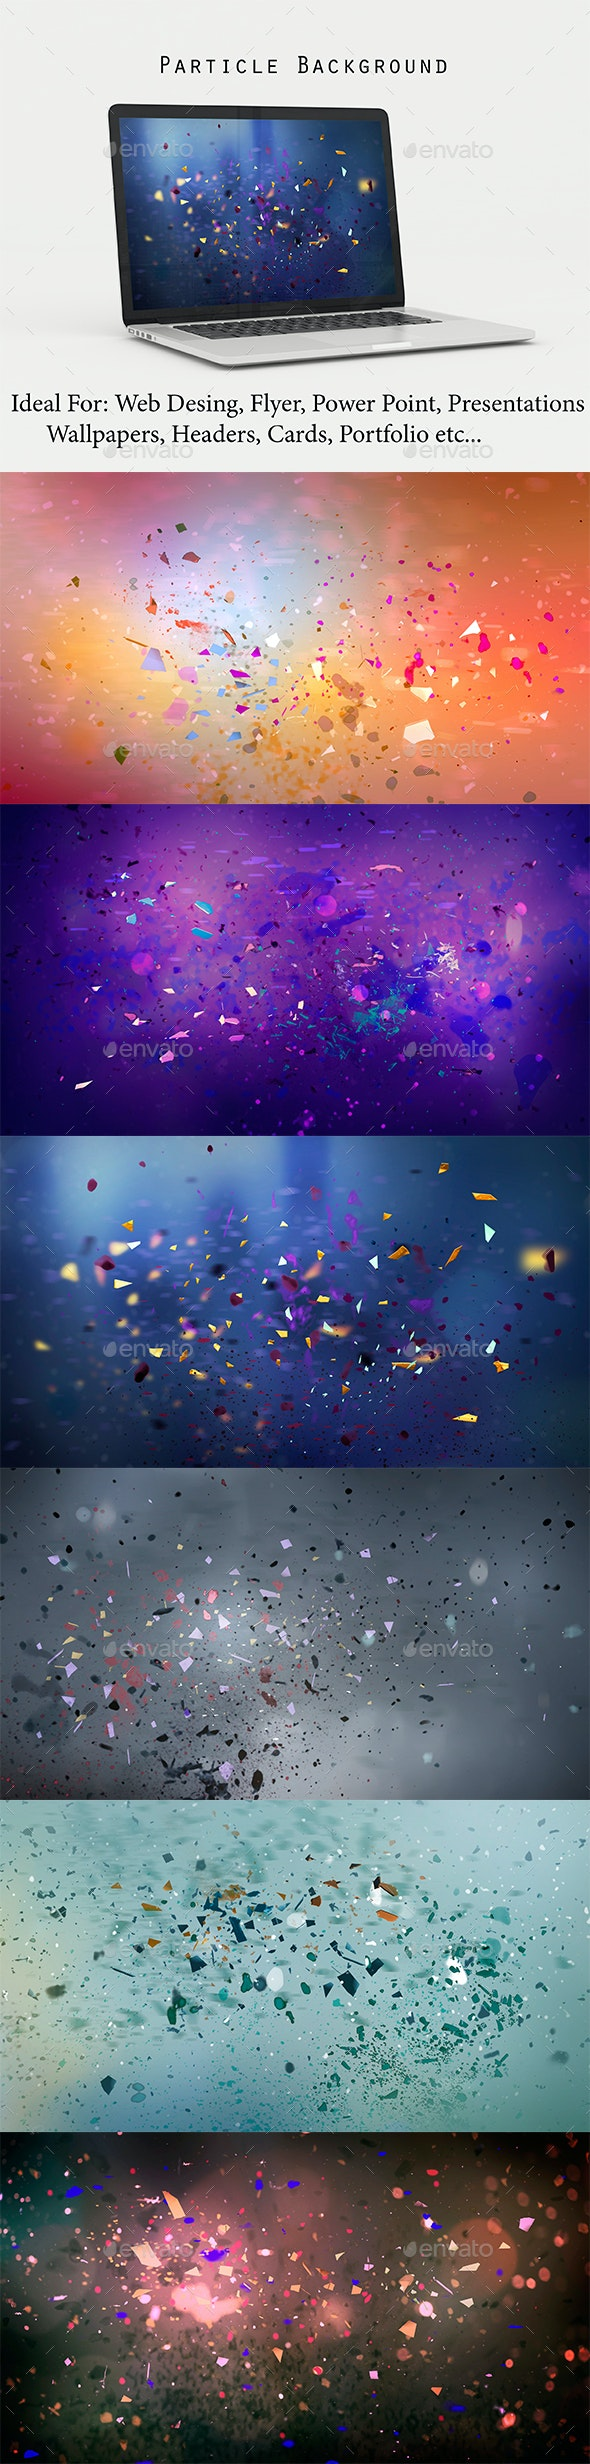 Particle Background - Abstract Backgrounds